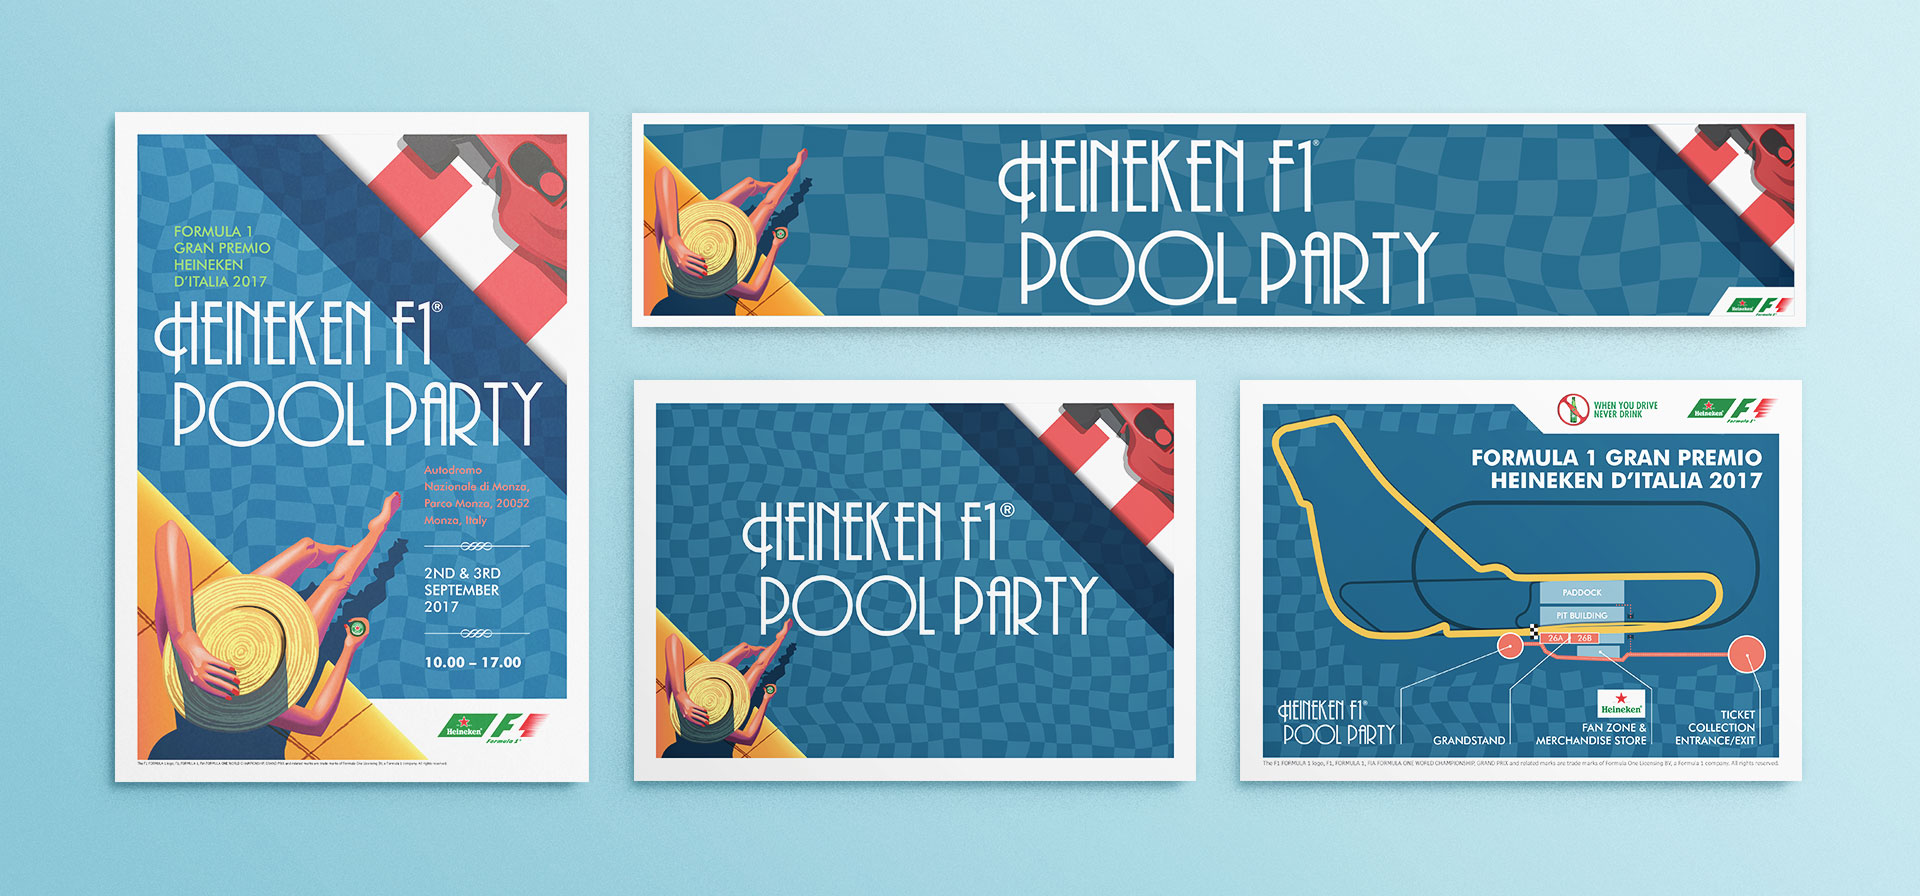 heineken f1 pool party graphics